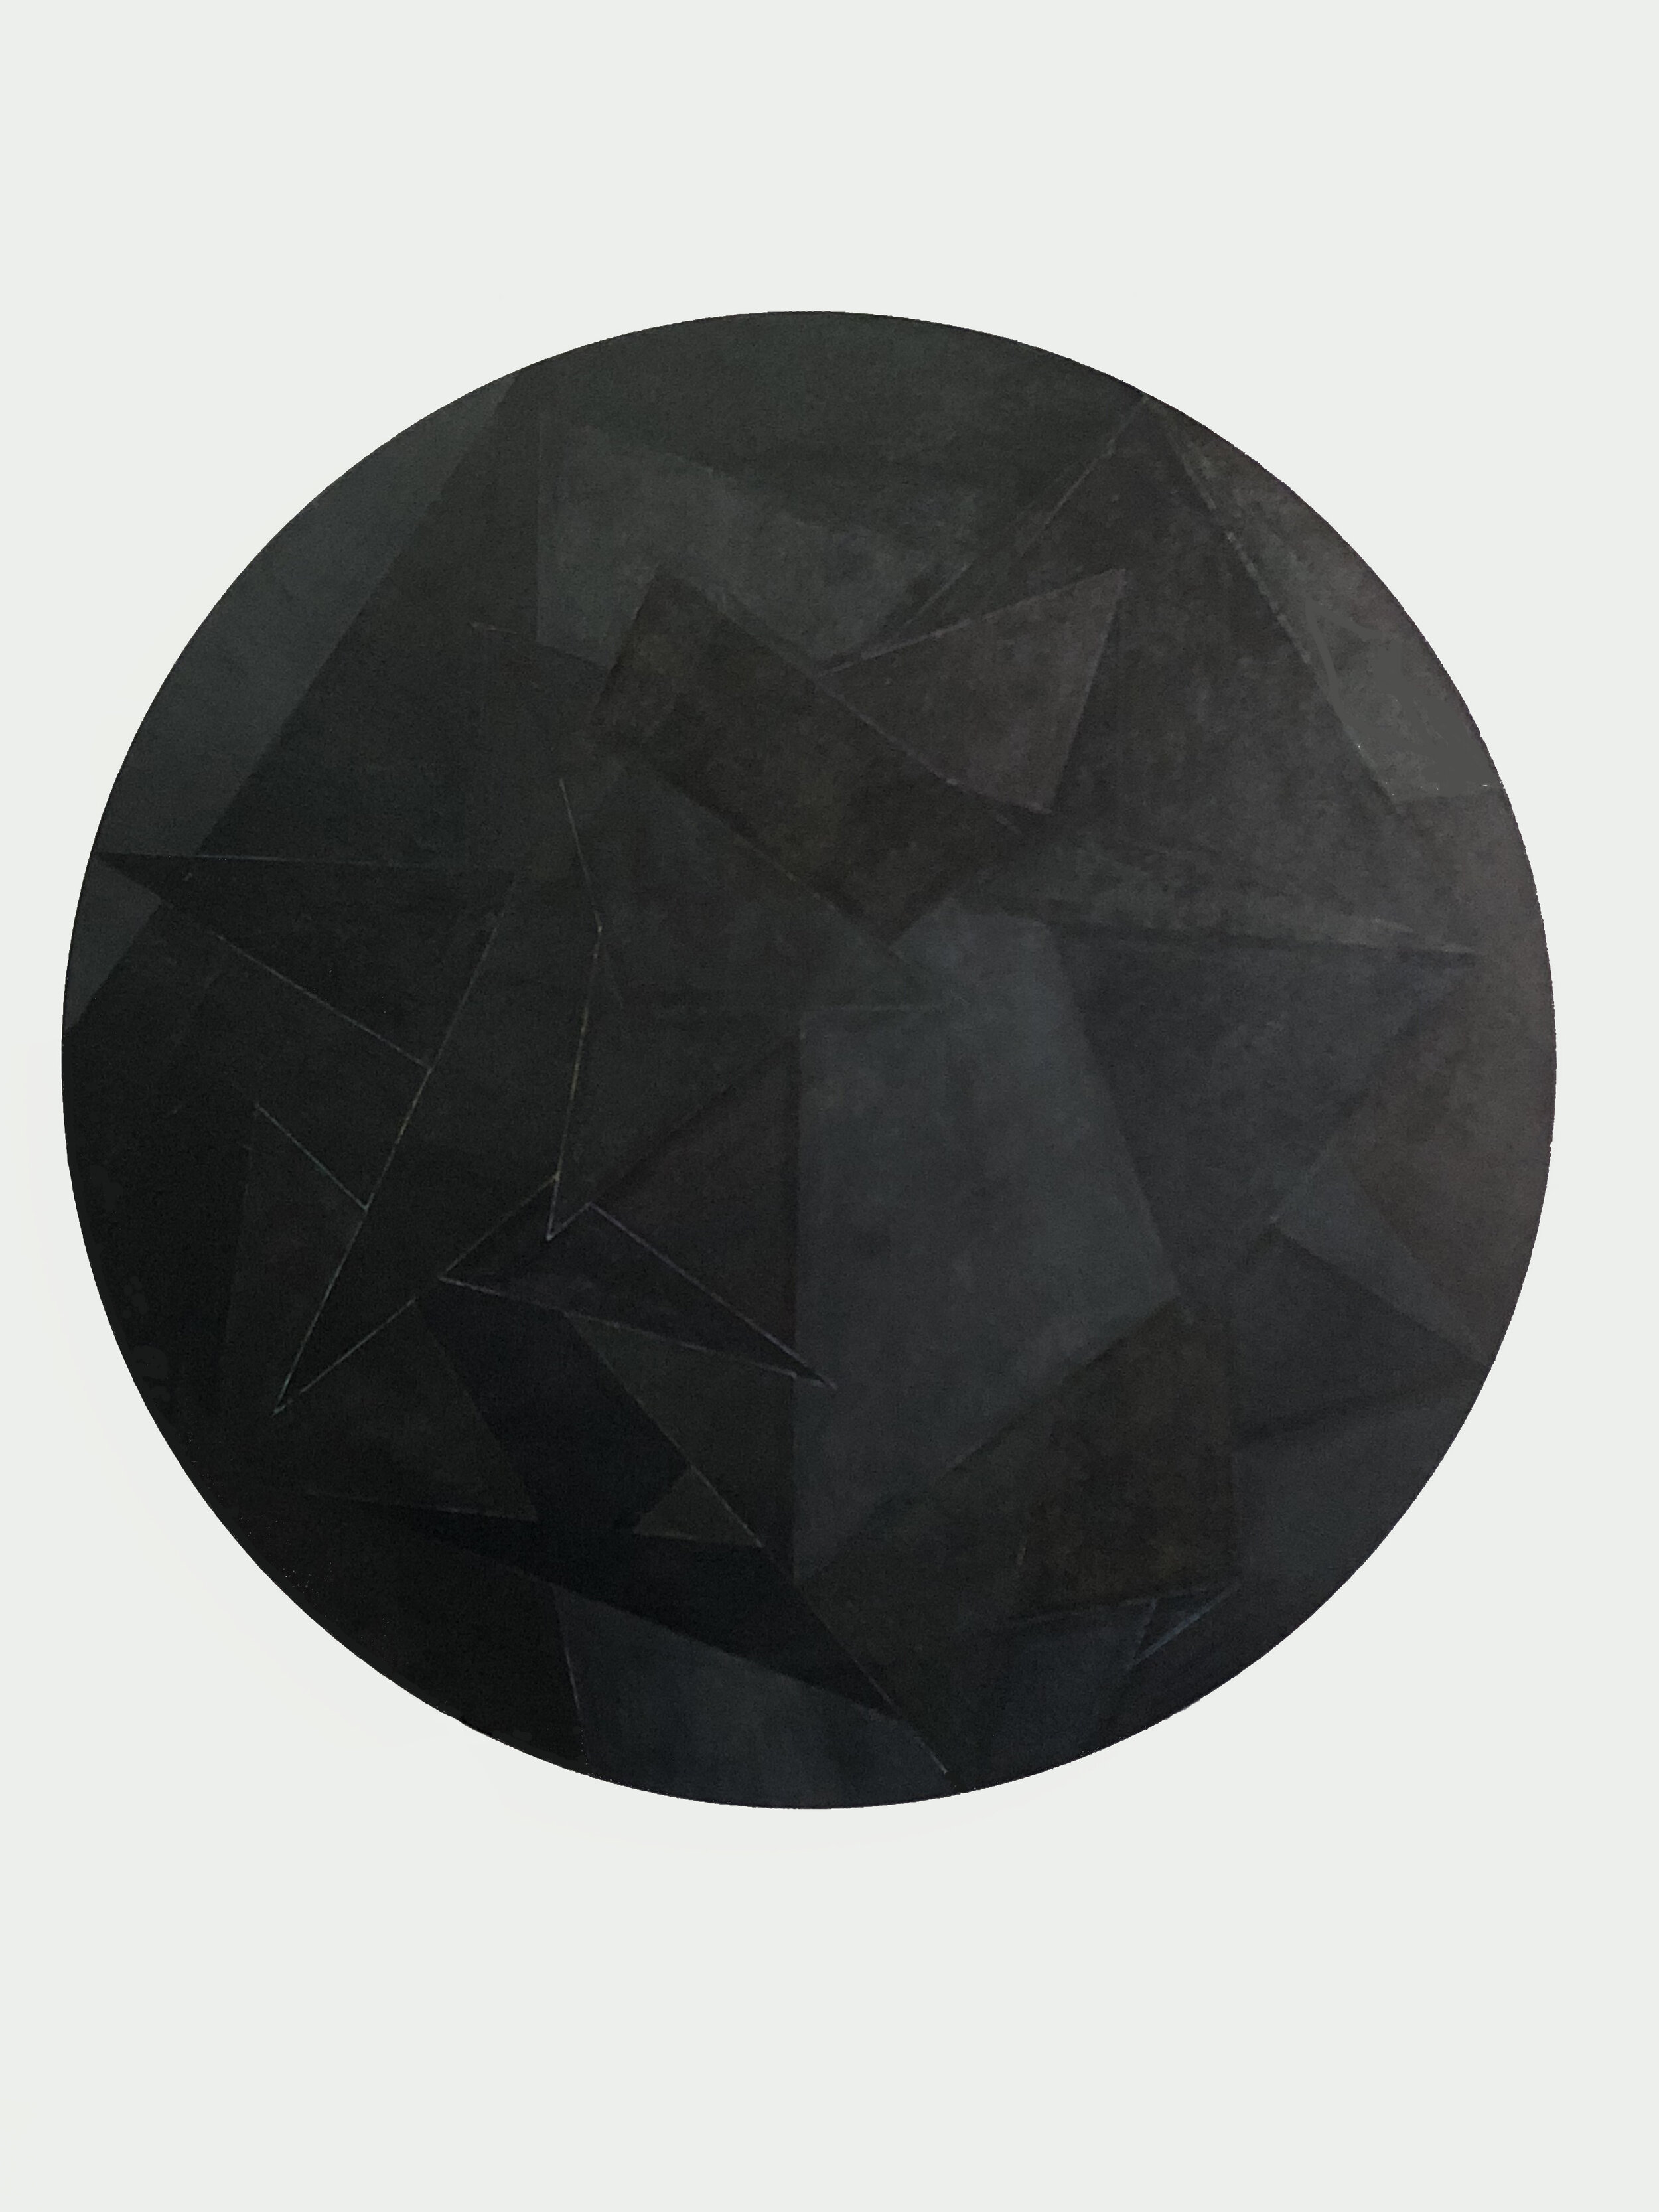 Back To Black, 2018, 42 in. round, acrylic on canvas